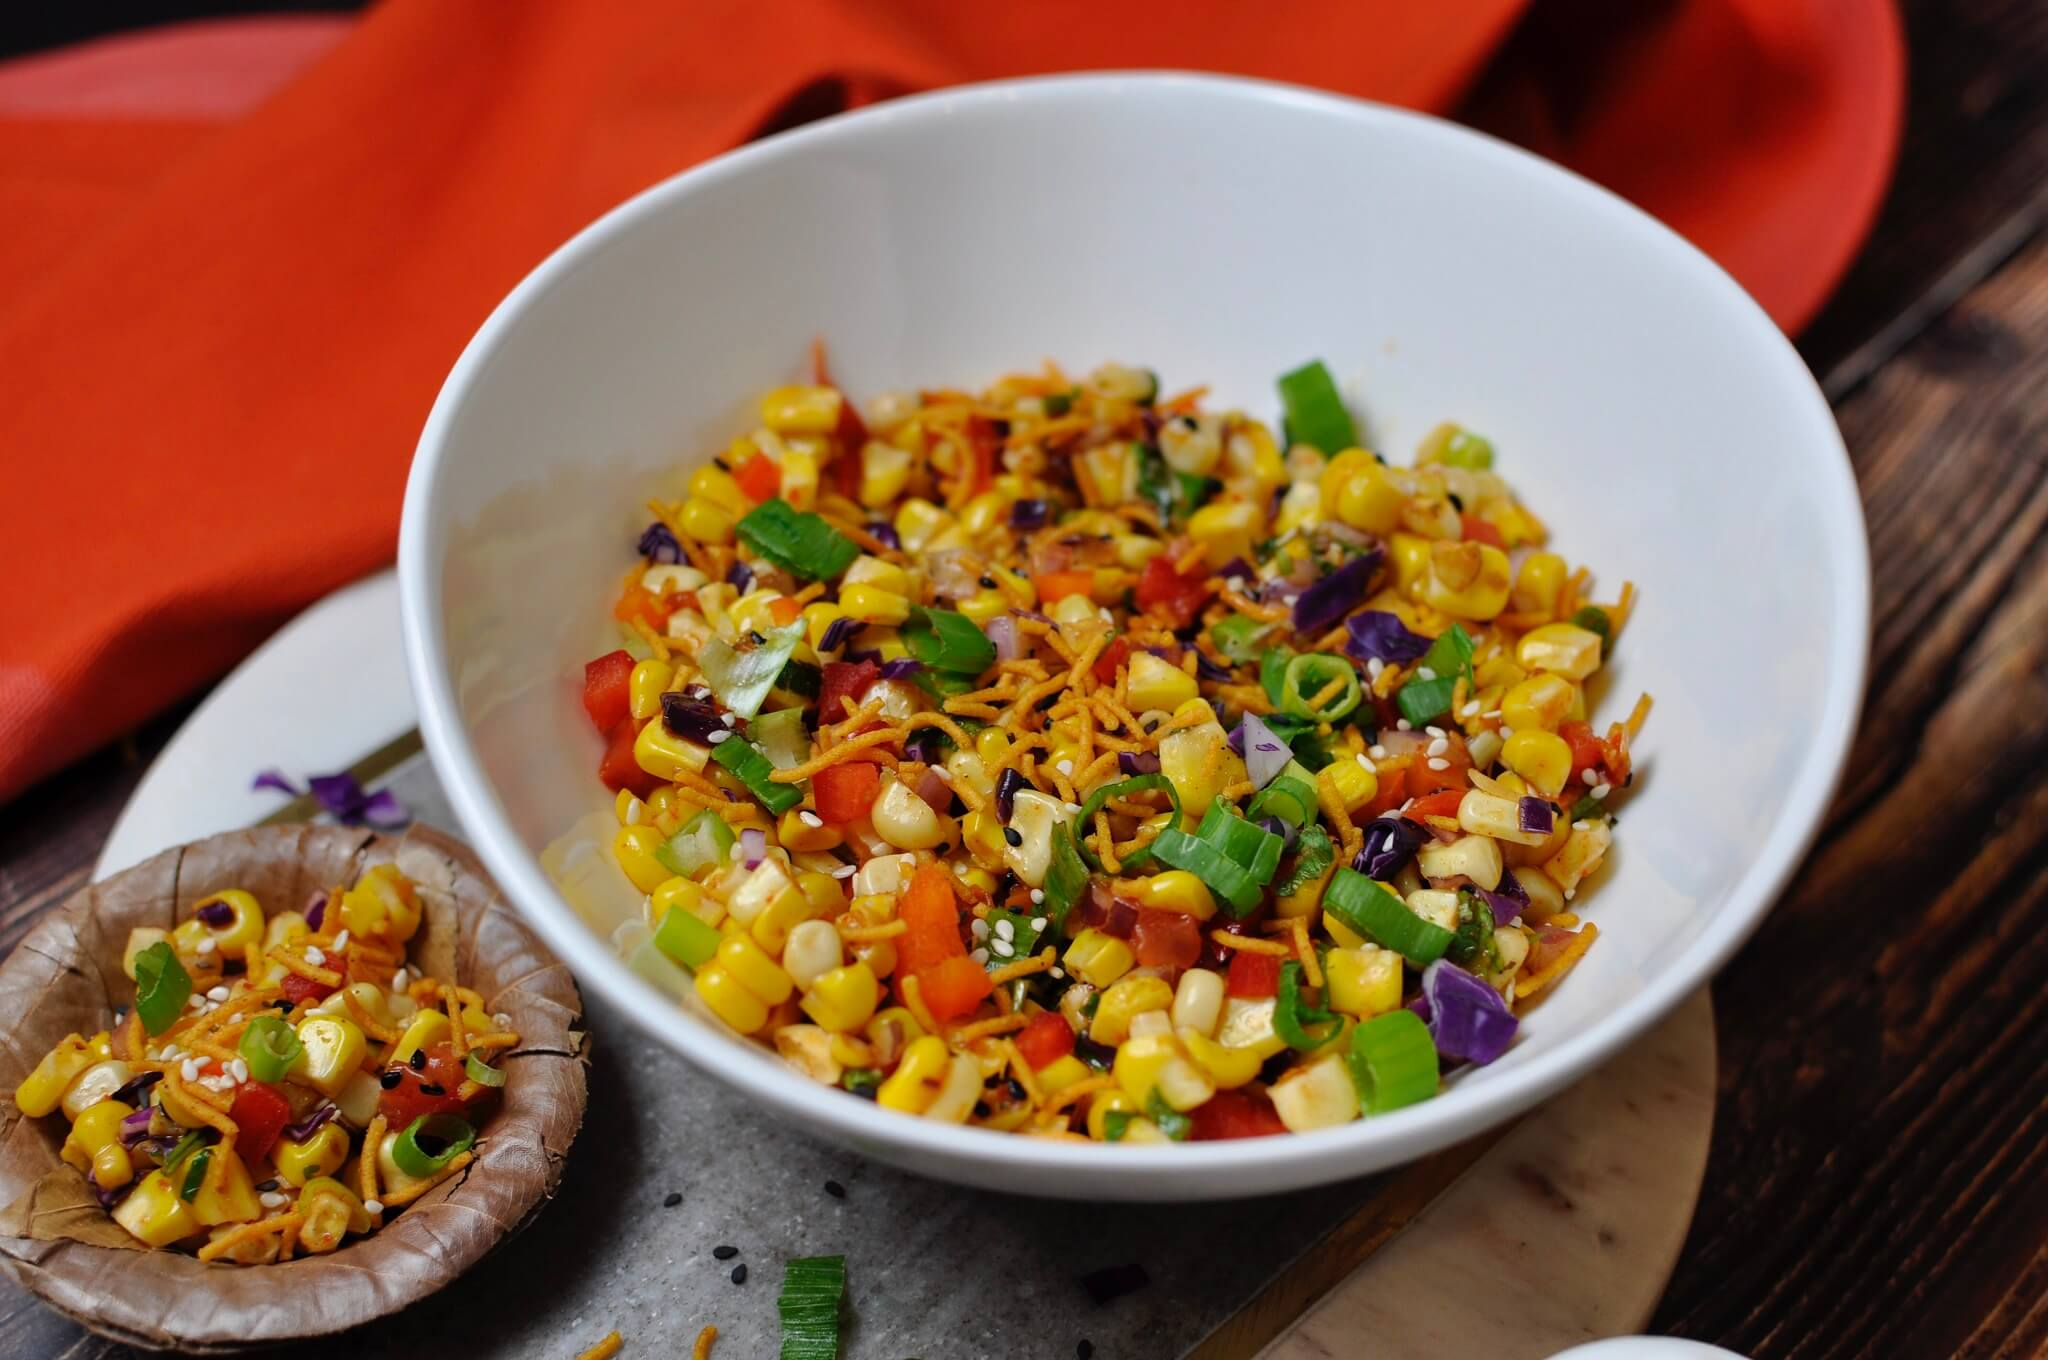 With warm corn, spicy masala, and crunchy vegetables, this Asian Corn Bhel checks off all of the boxes! Perfect as a Friday evening snack or quick appetizer, it's hard to beat that signature Indo-Chinese flavor!